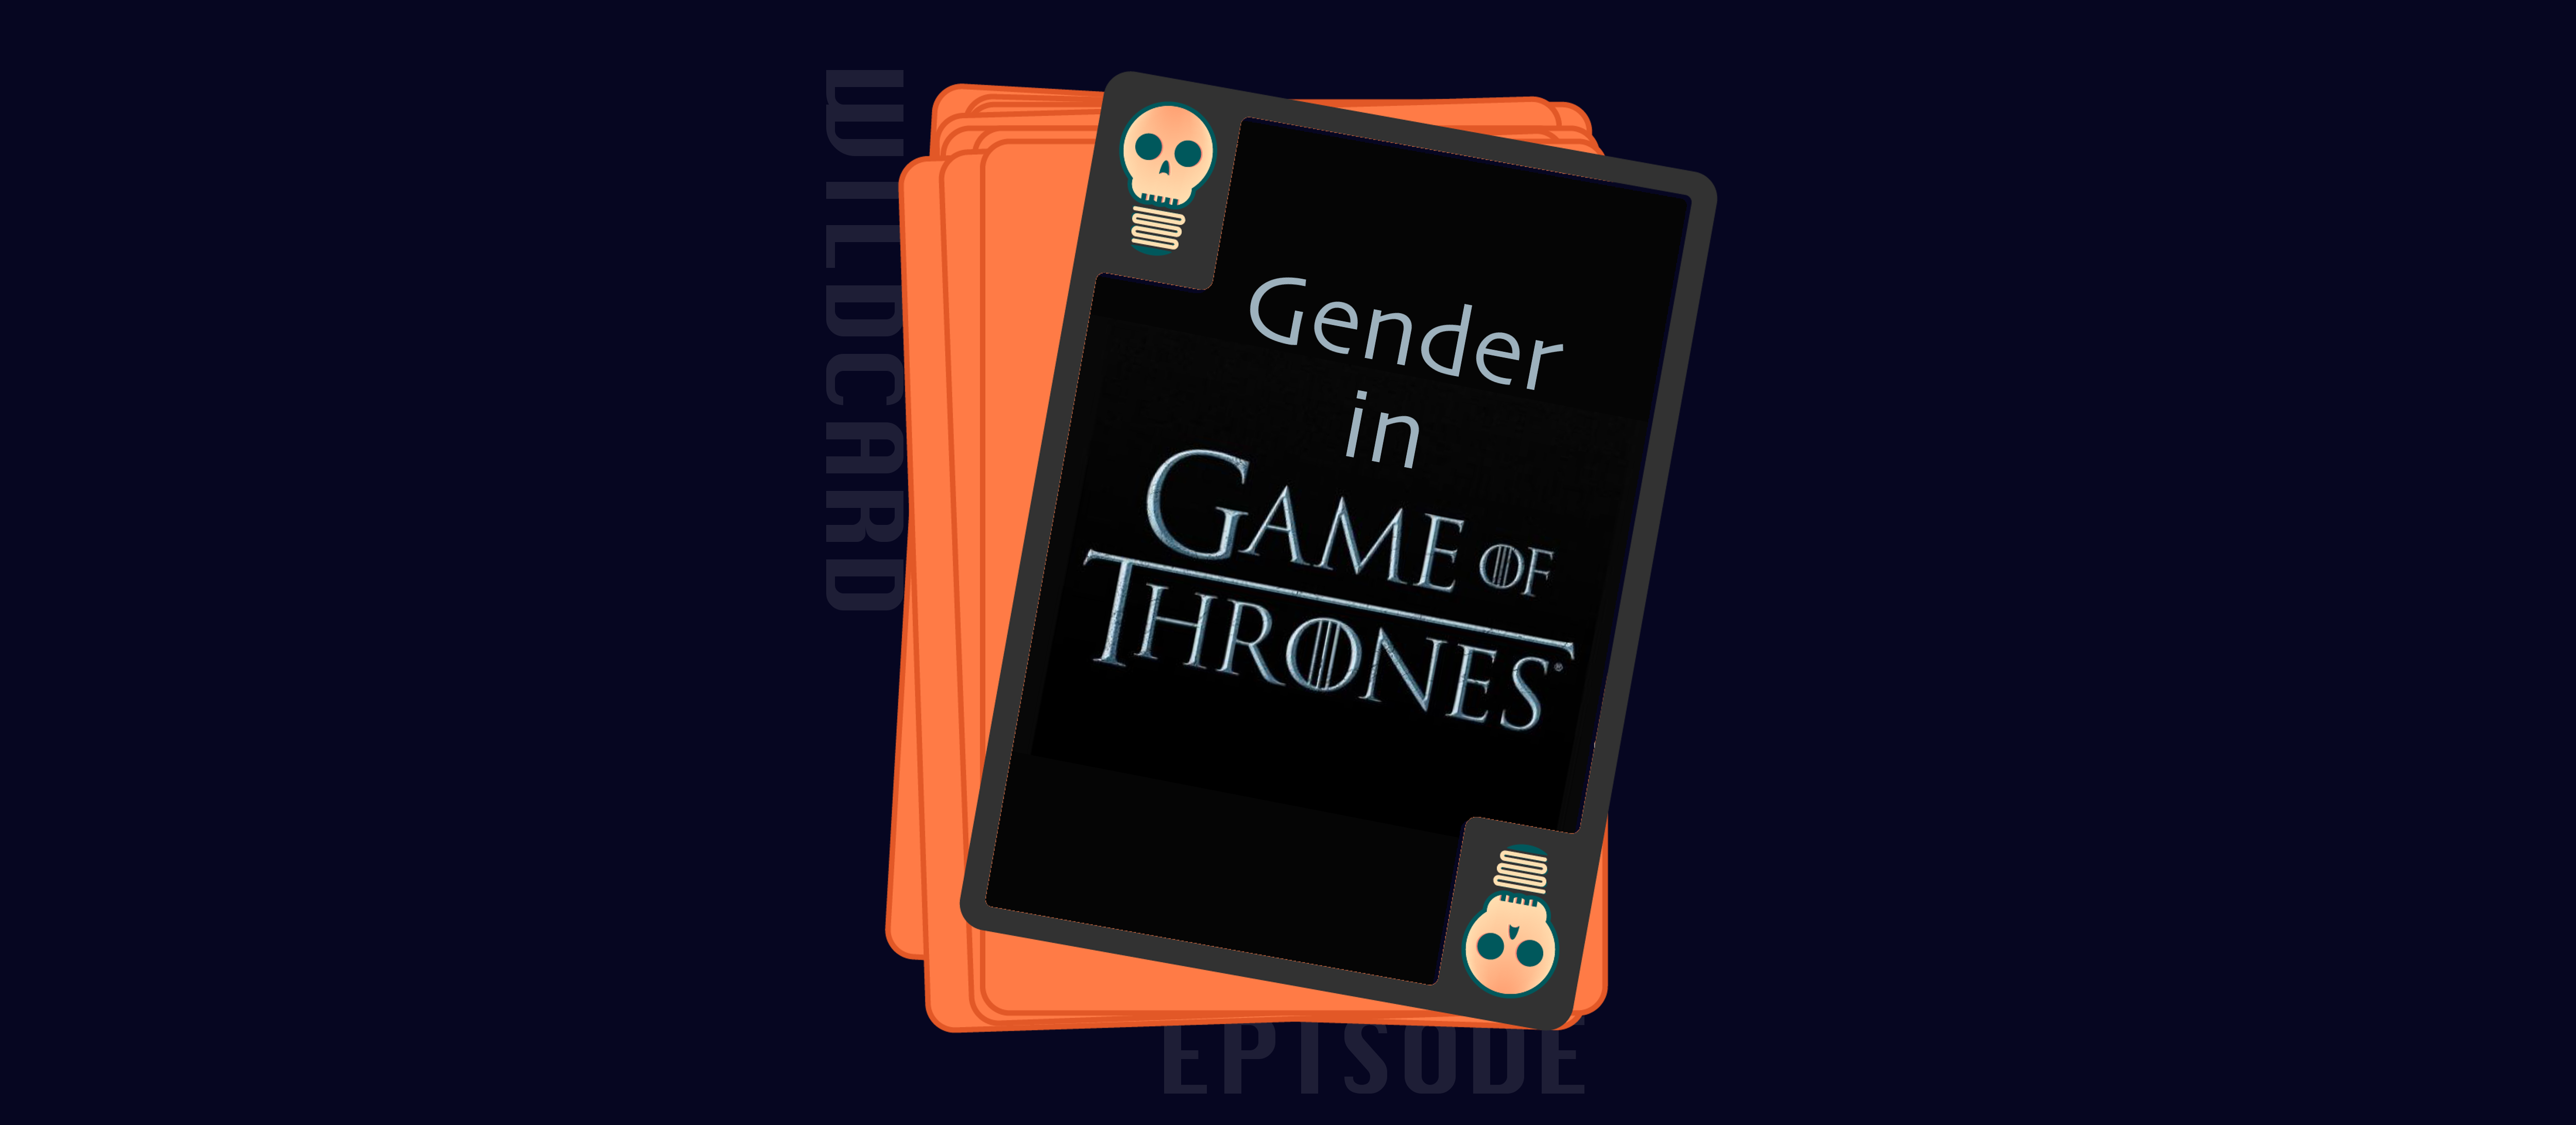 Gender in Game of Thrones: Its Legacy